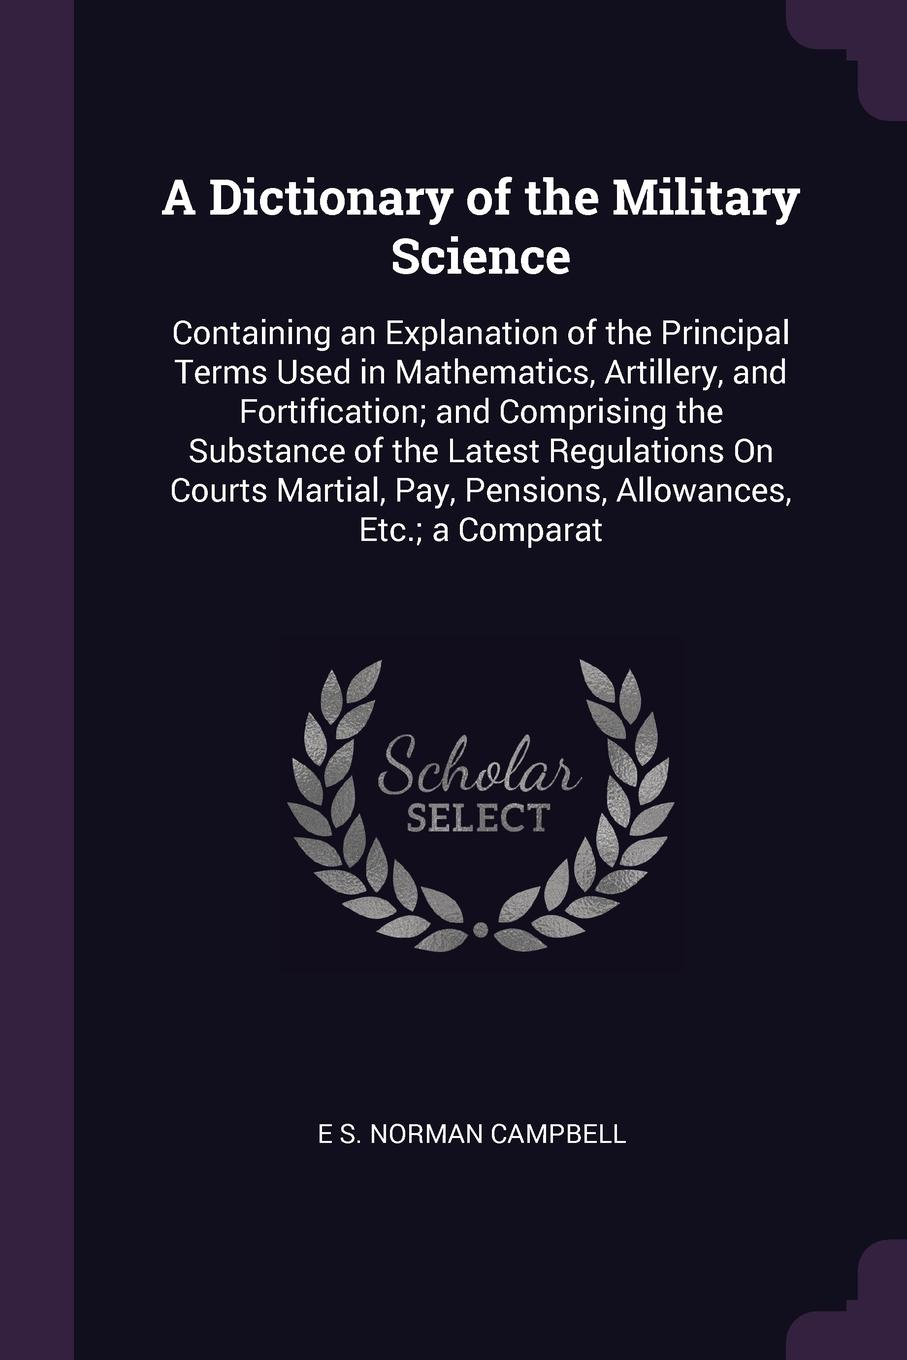 A Dictionary of the Military Science. Containing an Explanation of the Principal Terms Used in Mathematics, Artillery, and Fortification; and Comprising the Substance of the Latest Regulations On Courts Martial, Pay, Pensions, Allowances, Etc.; a ...